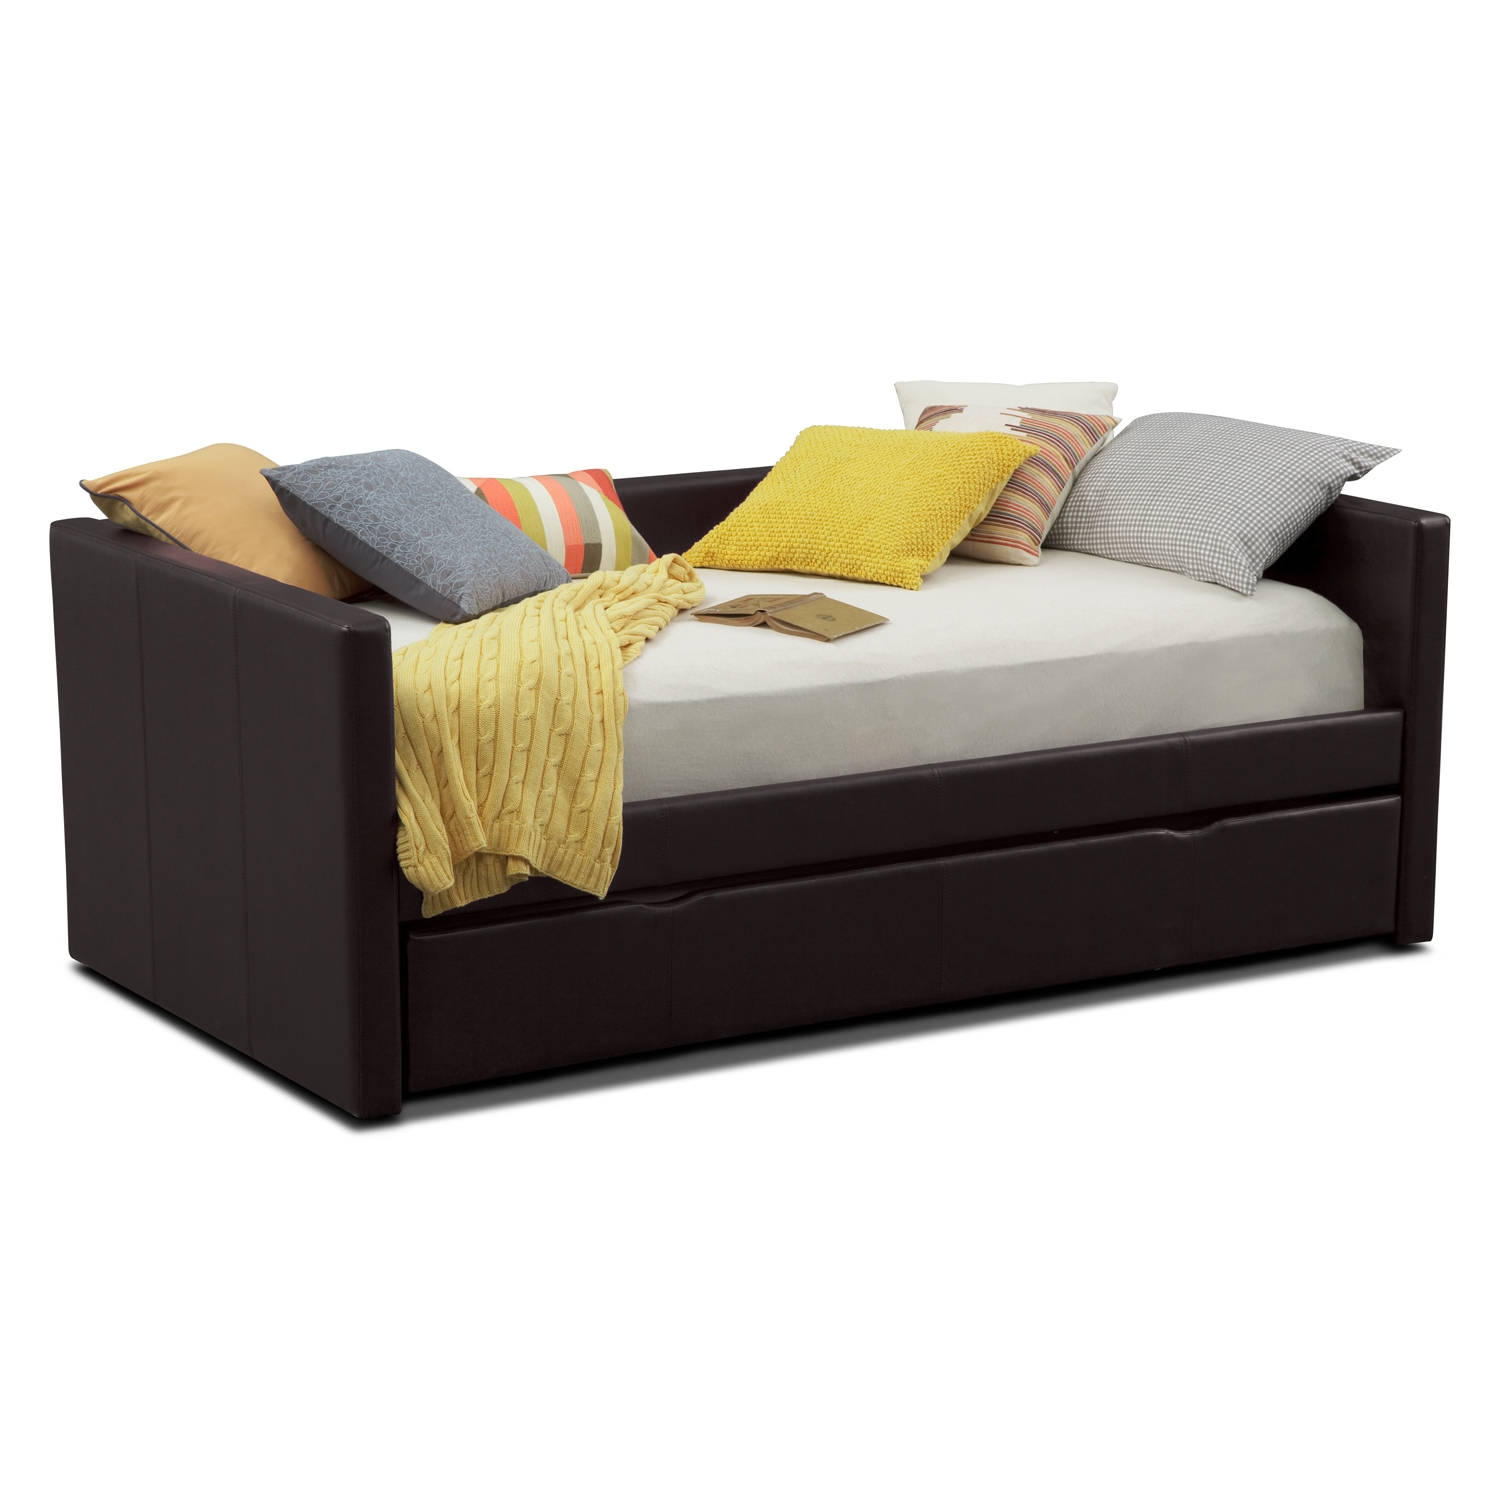 Cheap Daybeds | Daybed with Trundle and Storage | Modern Daybed